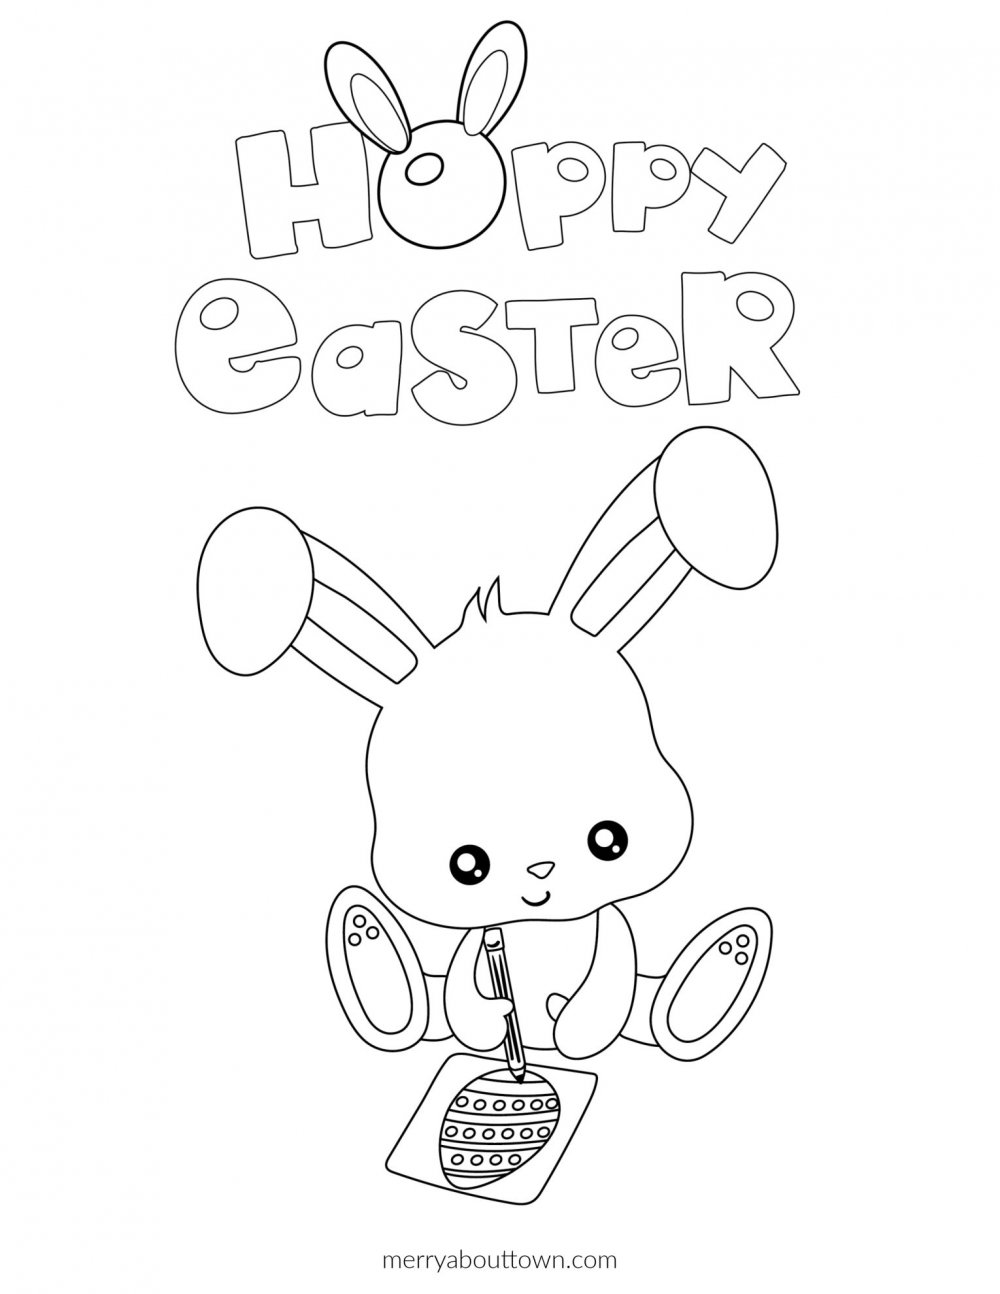 Hoppy Easter Free Easter Printable Coloring Pages